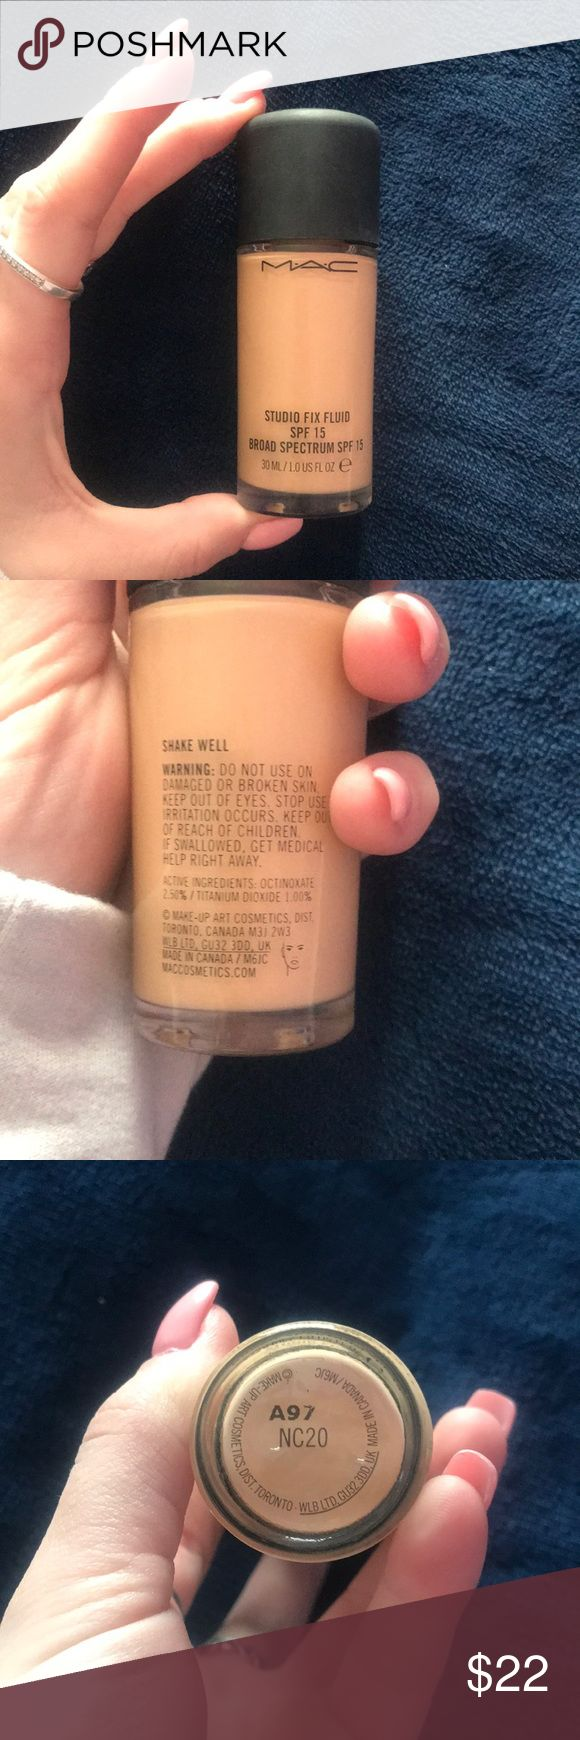 💙MAC STUDIO FIX FOUNDATION💙 Mac cosmetics studio fix foundation in the shade NC20. Has been used once! Has the whole bottle left and was purchased online at the Mac website. Full coverage and perfect for a night out or for ladies who love full coverage. MAC Cosmetics Makeup Foundation